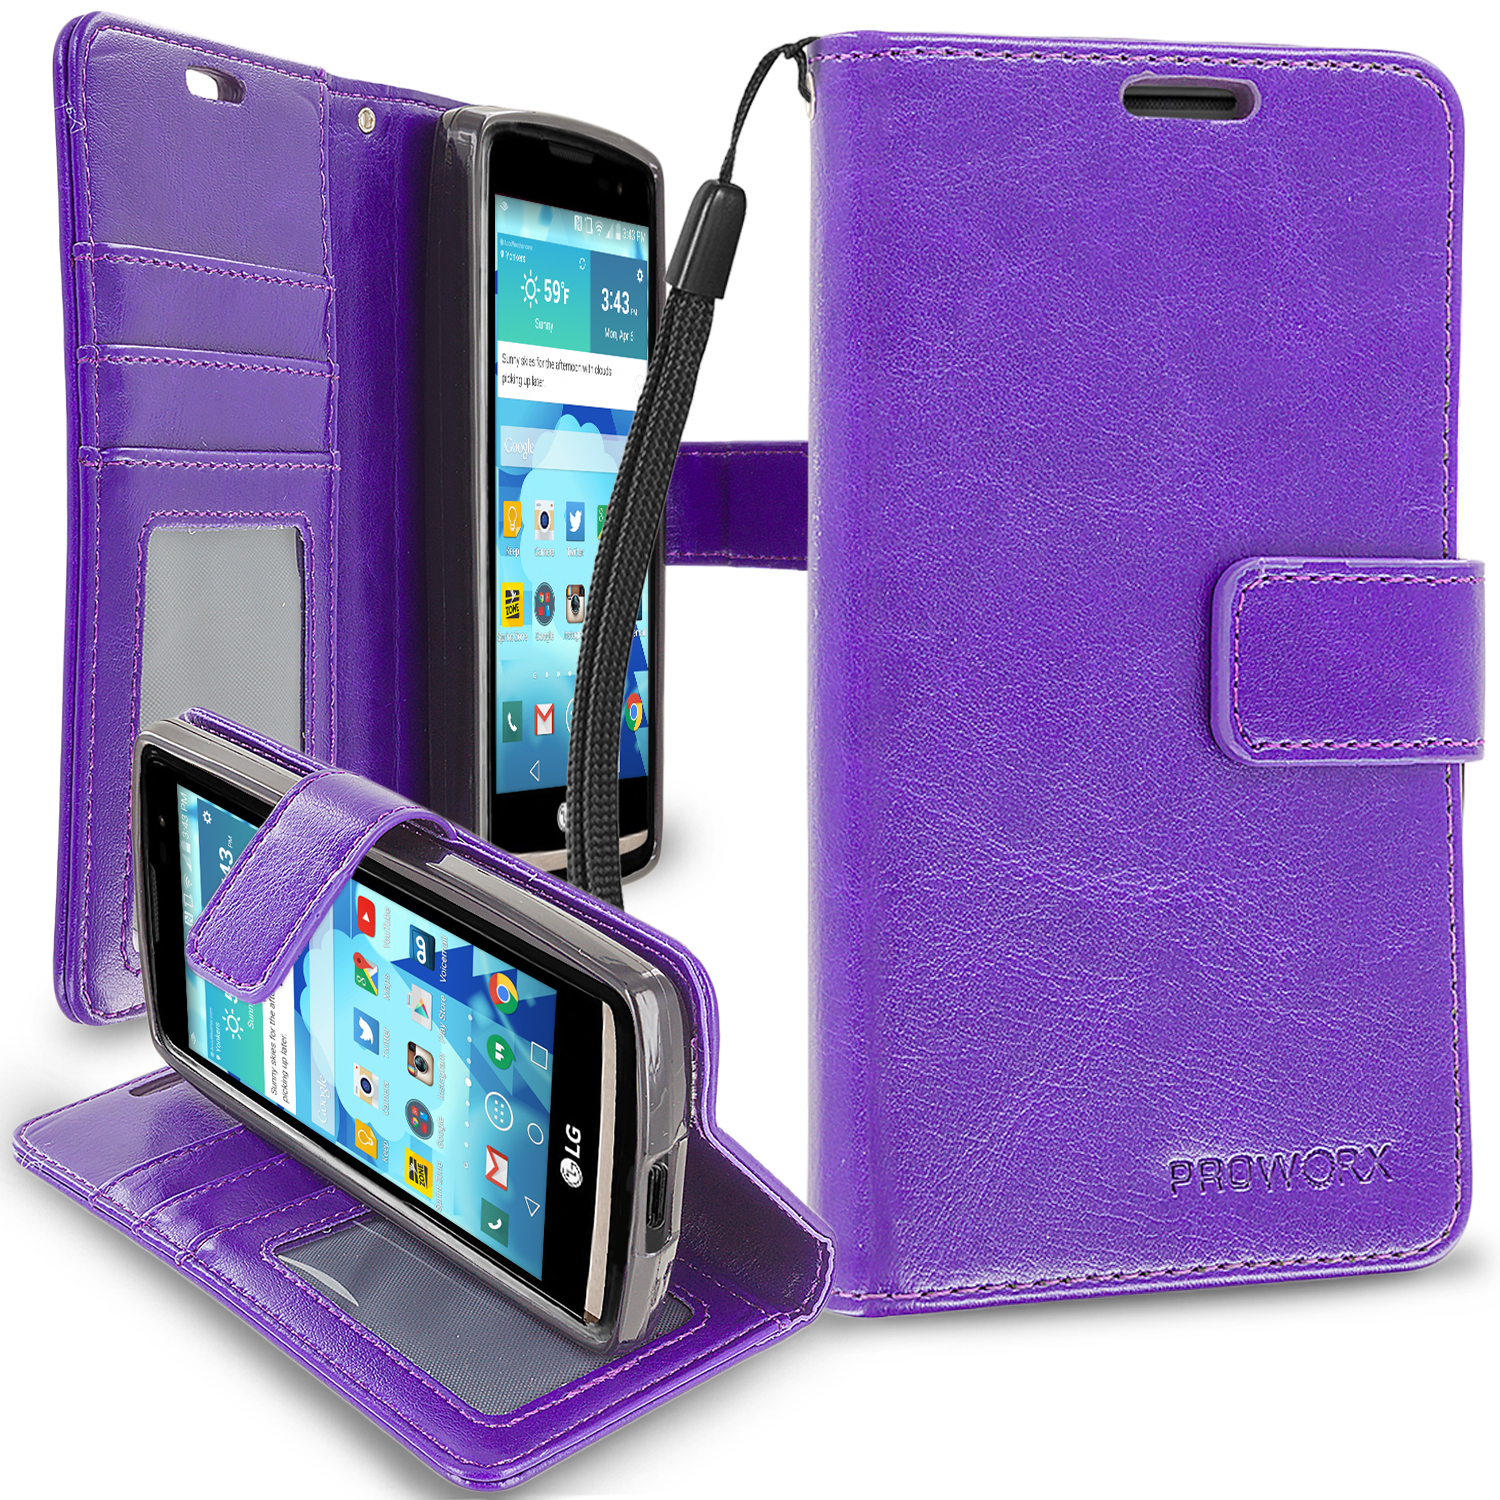 LG Tribute 2 Leon Power Destiny Purple ProWorx Wallet Case Luxury PU Leather Case Cover With Card Slots & Stand